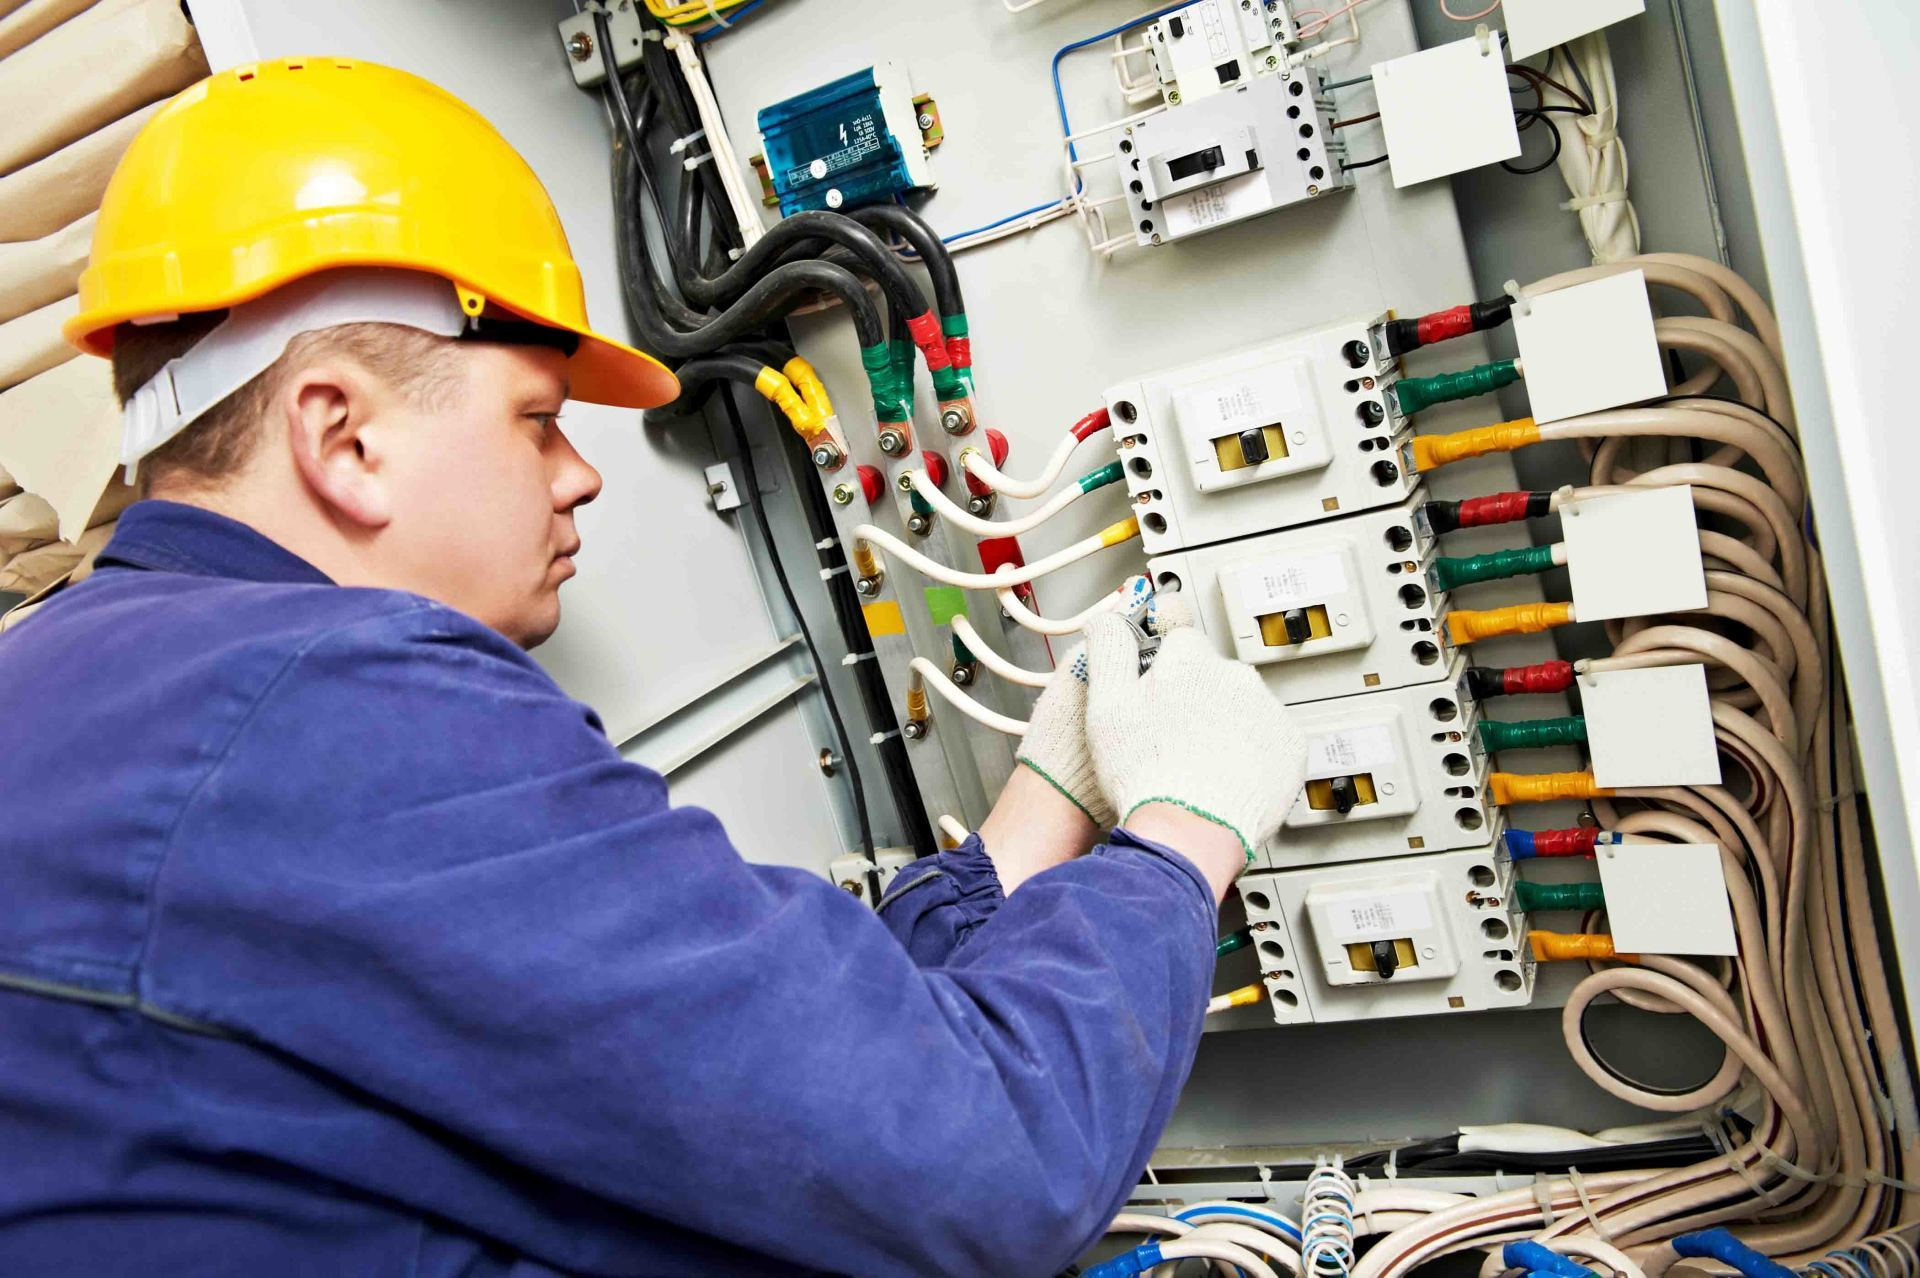 [SCHEMATICS_48YU]  Wiring Your New Commercial Building | Wiring A Commercial Building |  | Presley & Son Electric Service